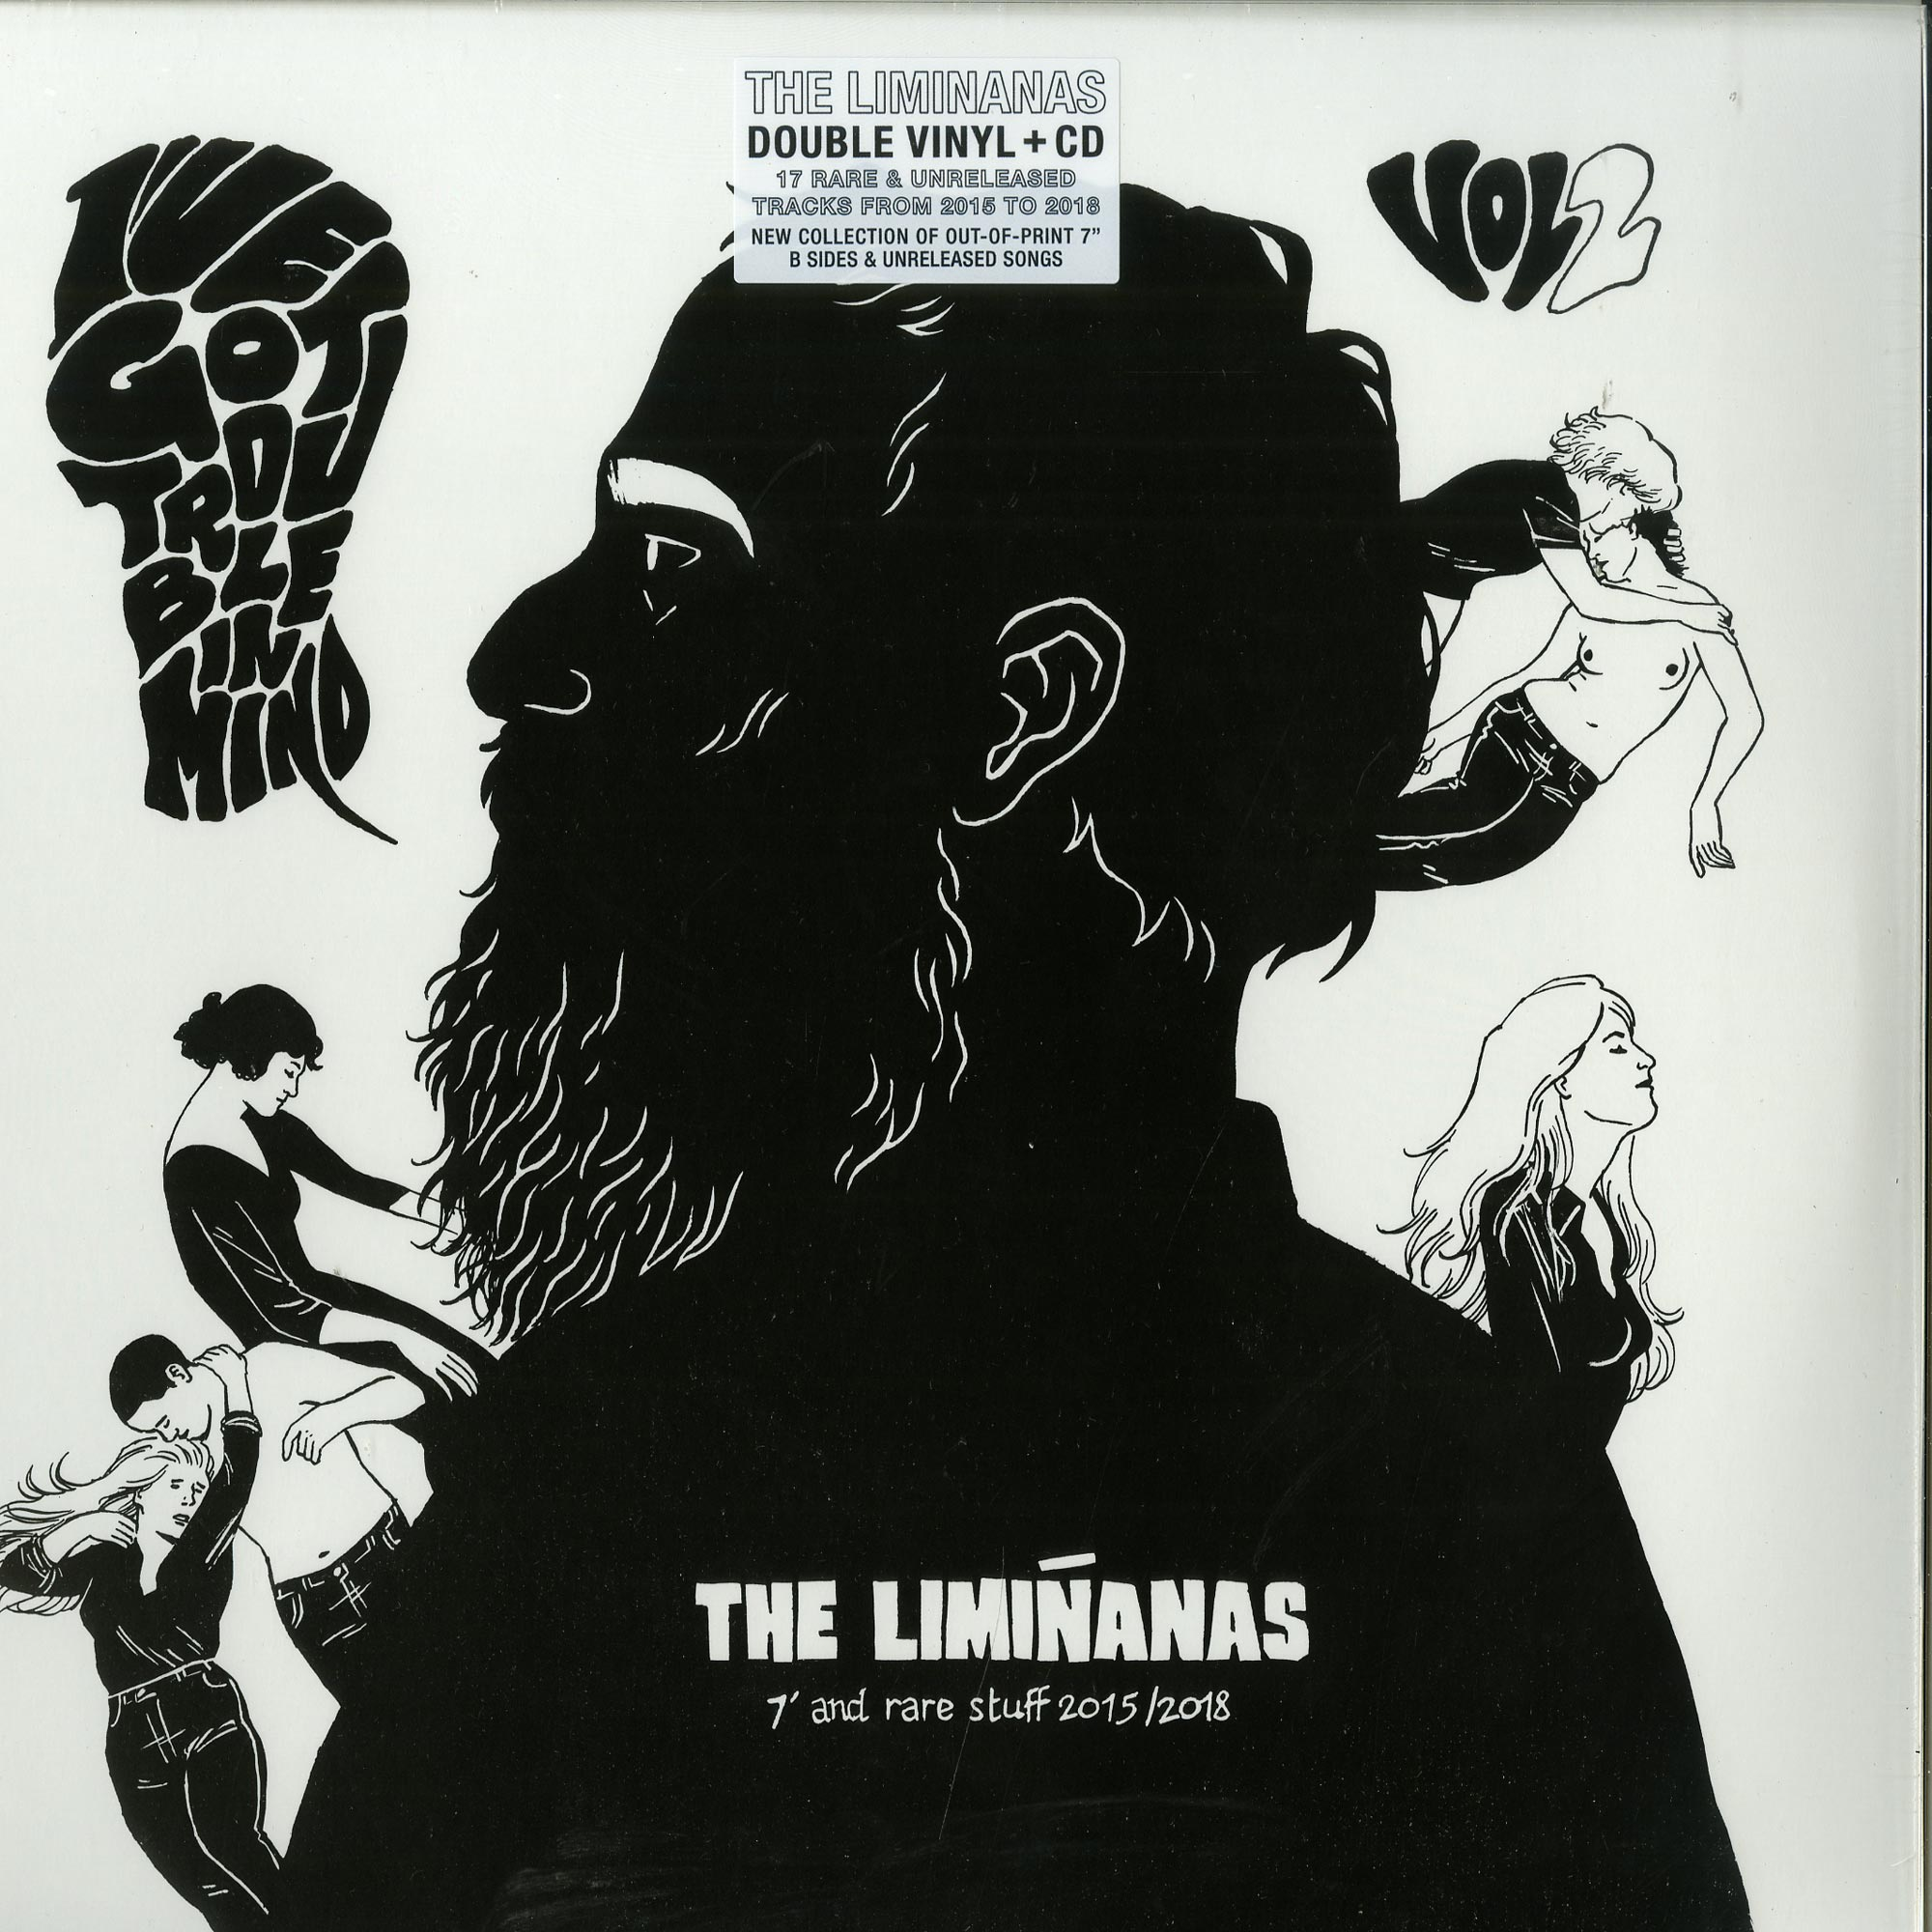 The Liminanas - I VE GOT TROUBLE IN MIND VOL. 2